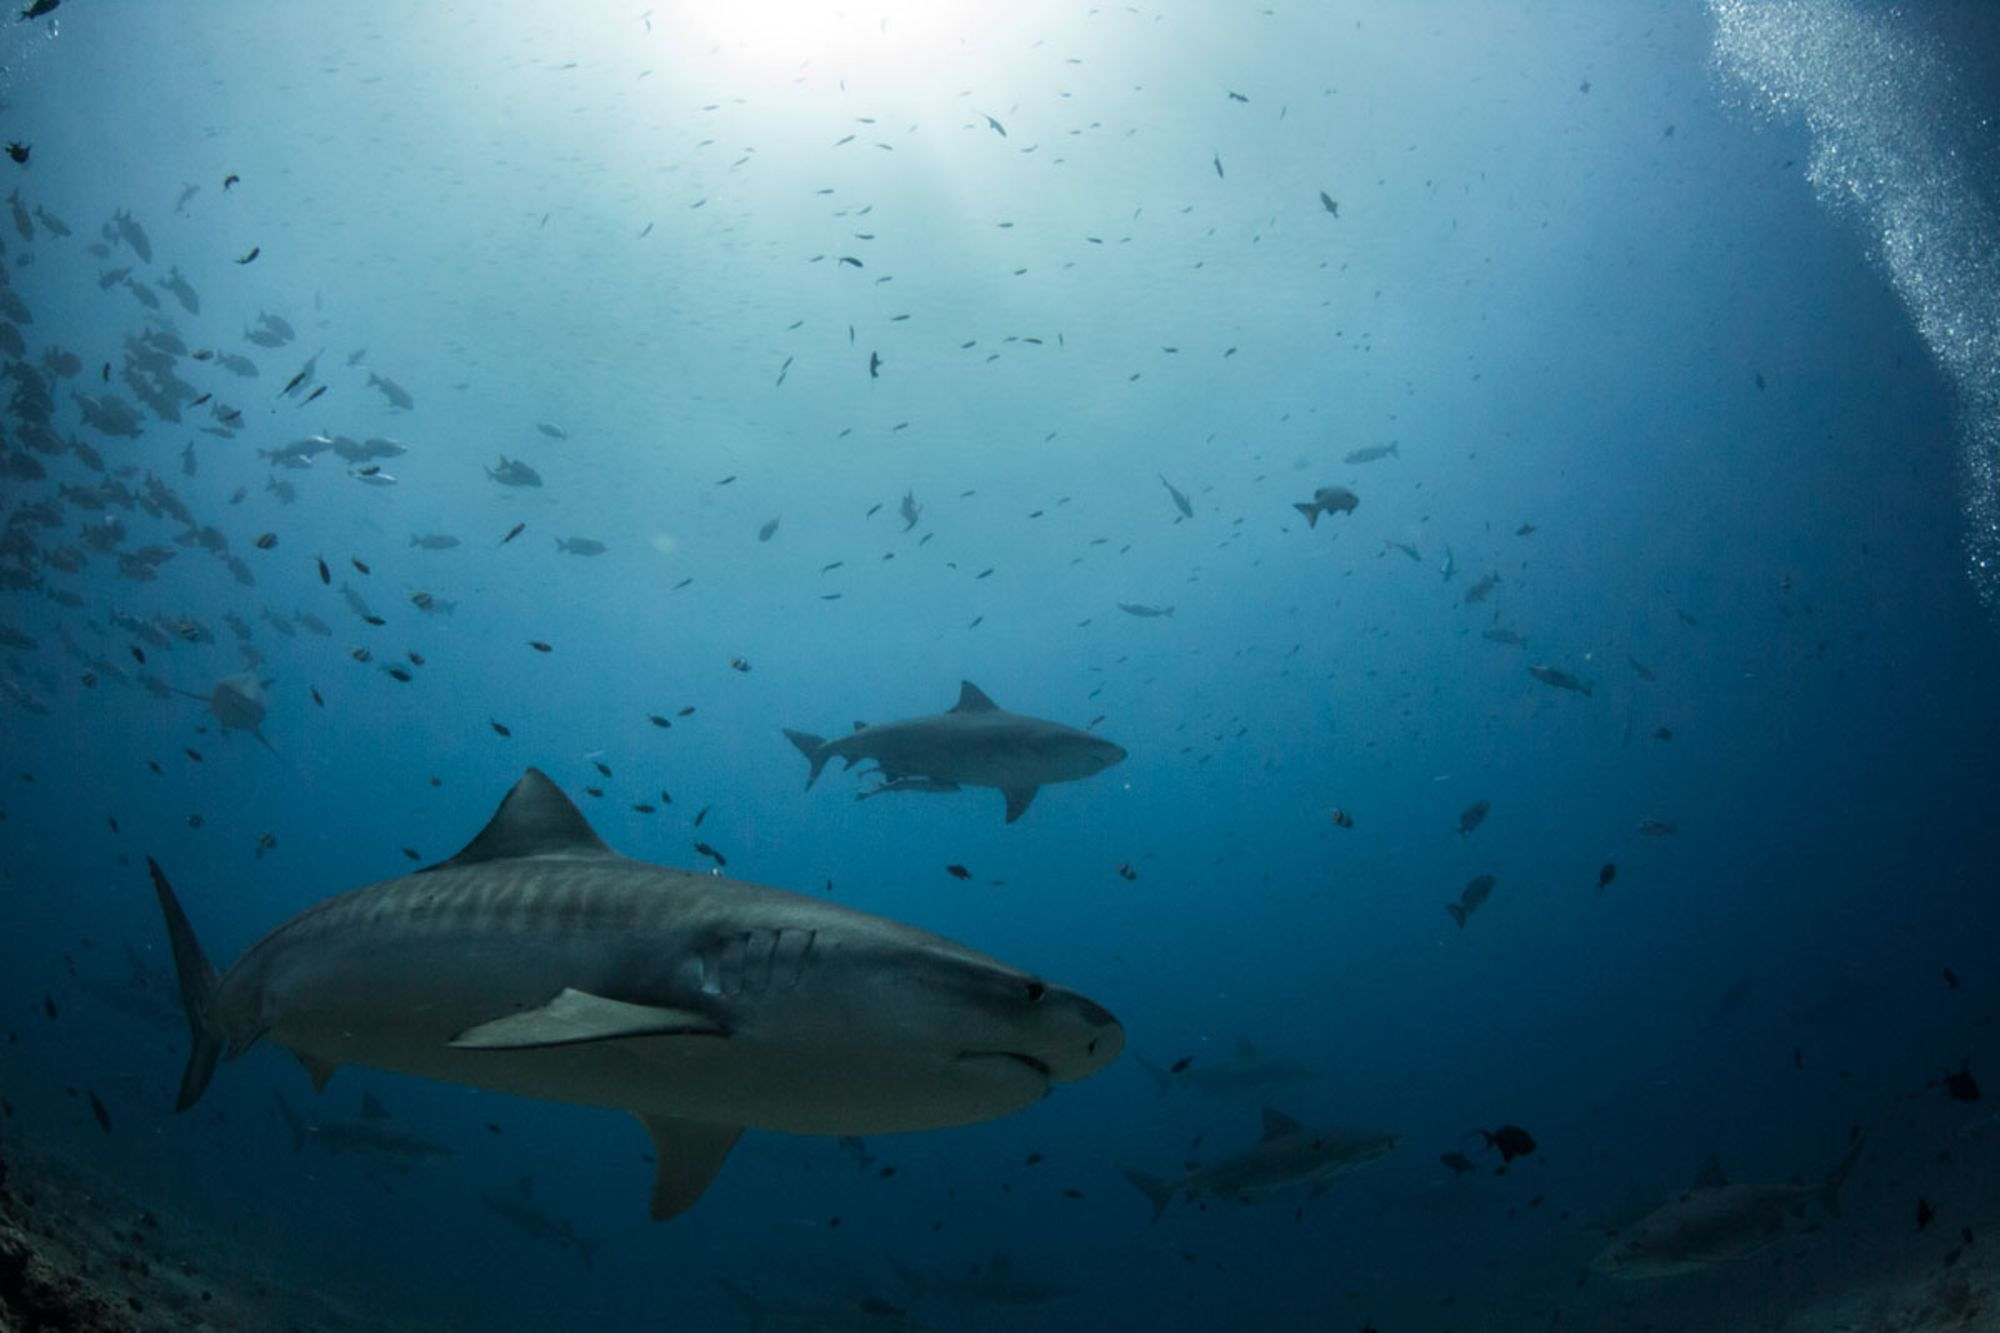 Even More Amazing Shark Facts You Haven't Heard a Million Times